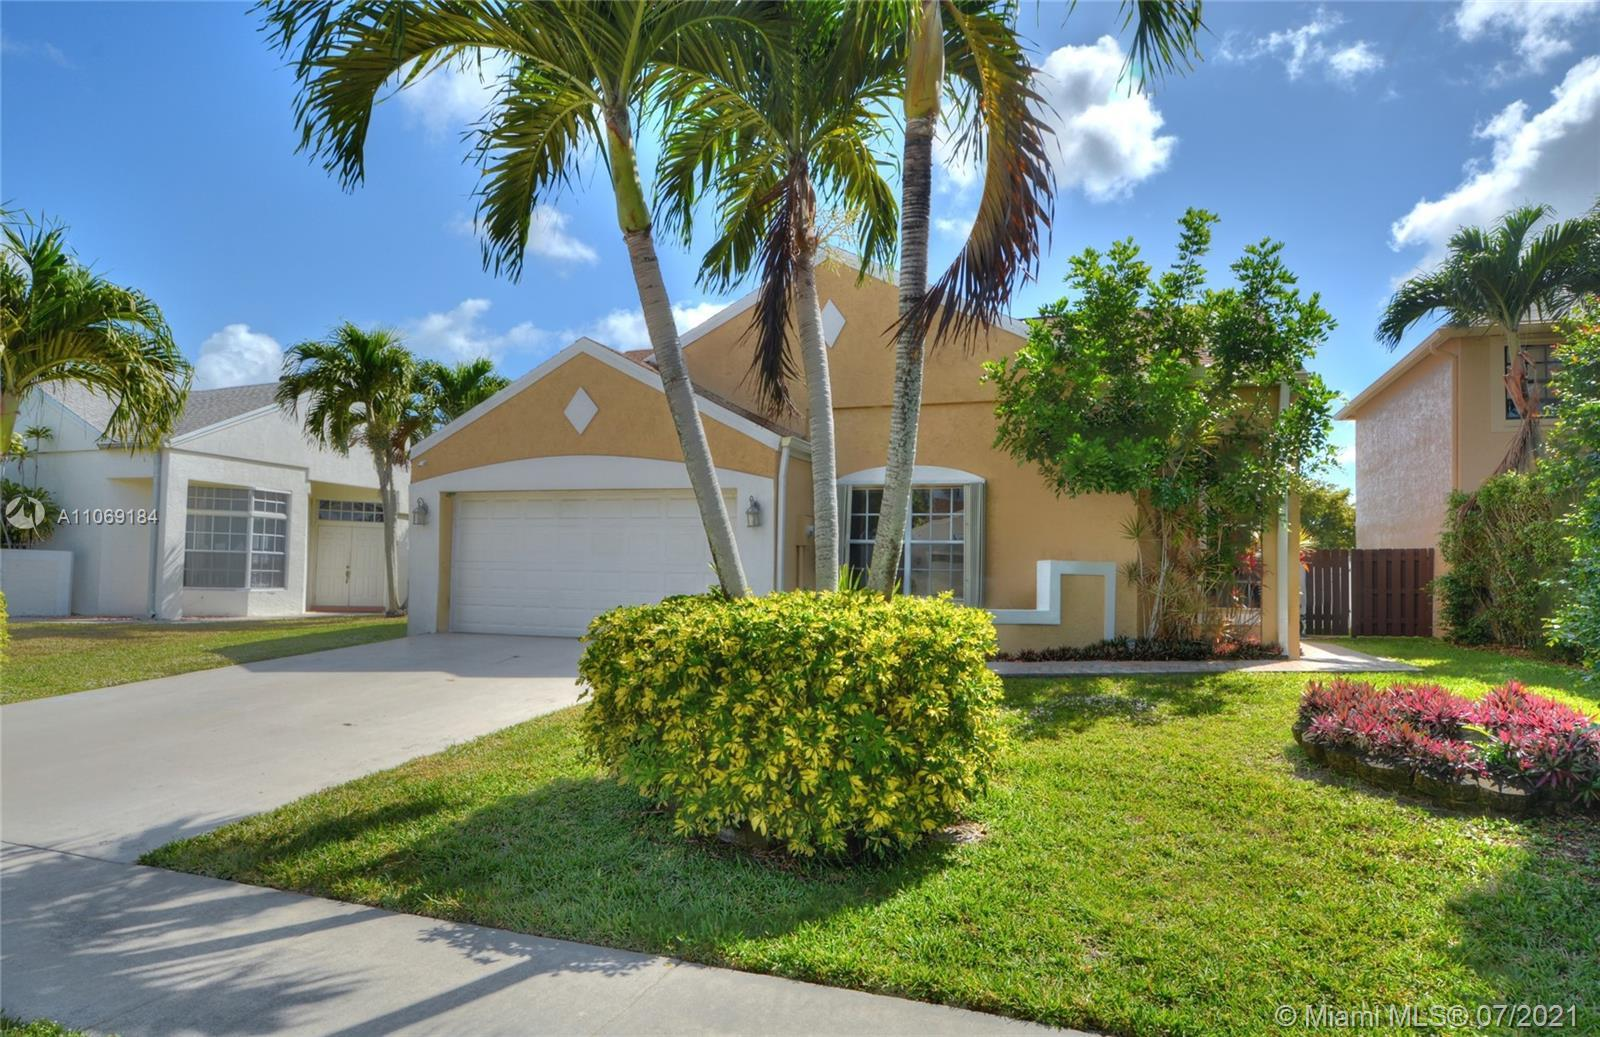 Beautiful, move-in ready lake front home in the heart of Boca. Come see this exquisite, exceptional